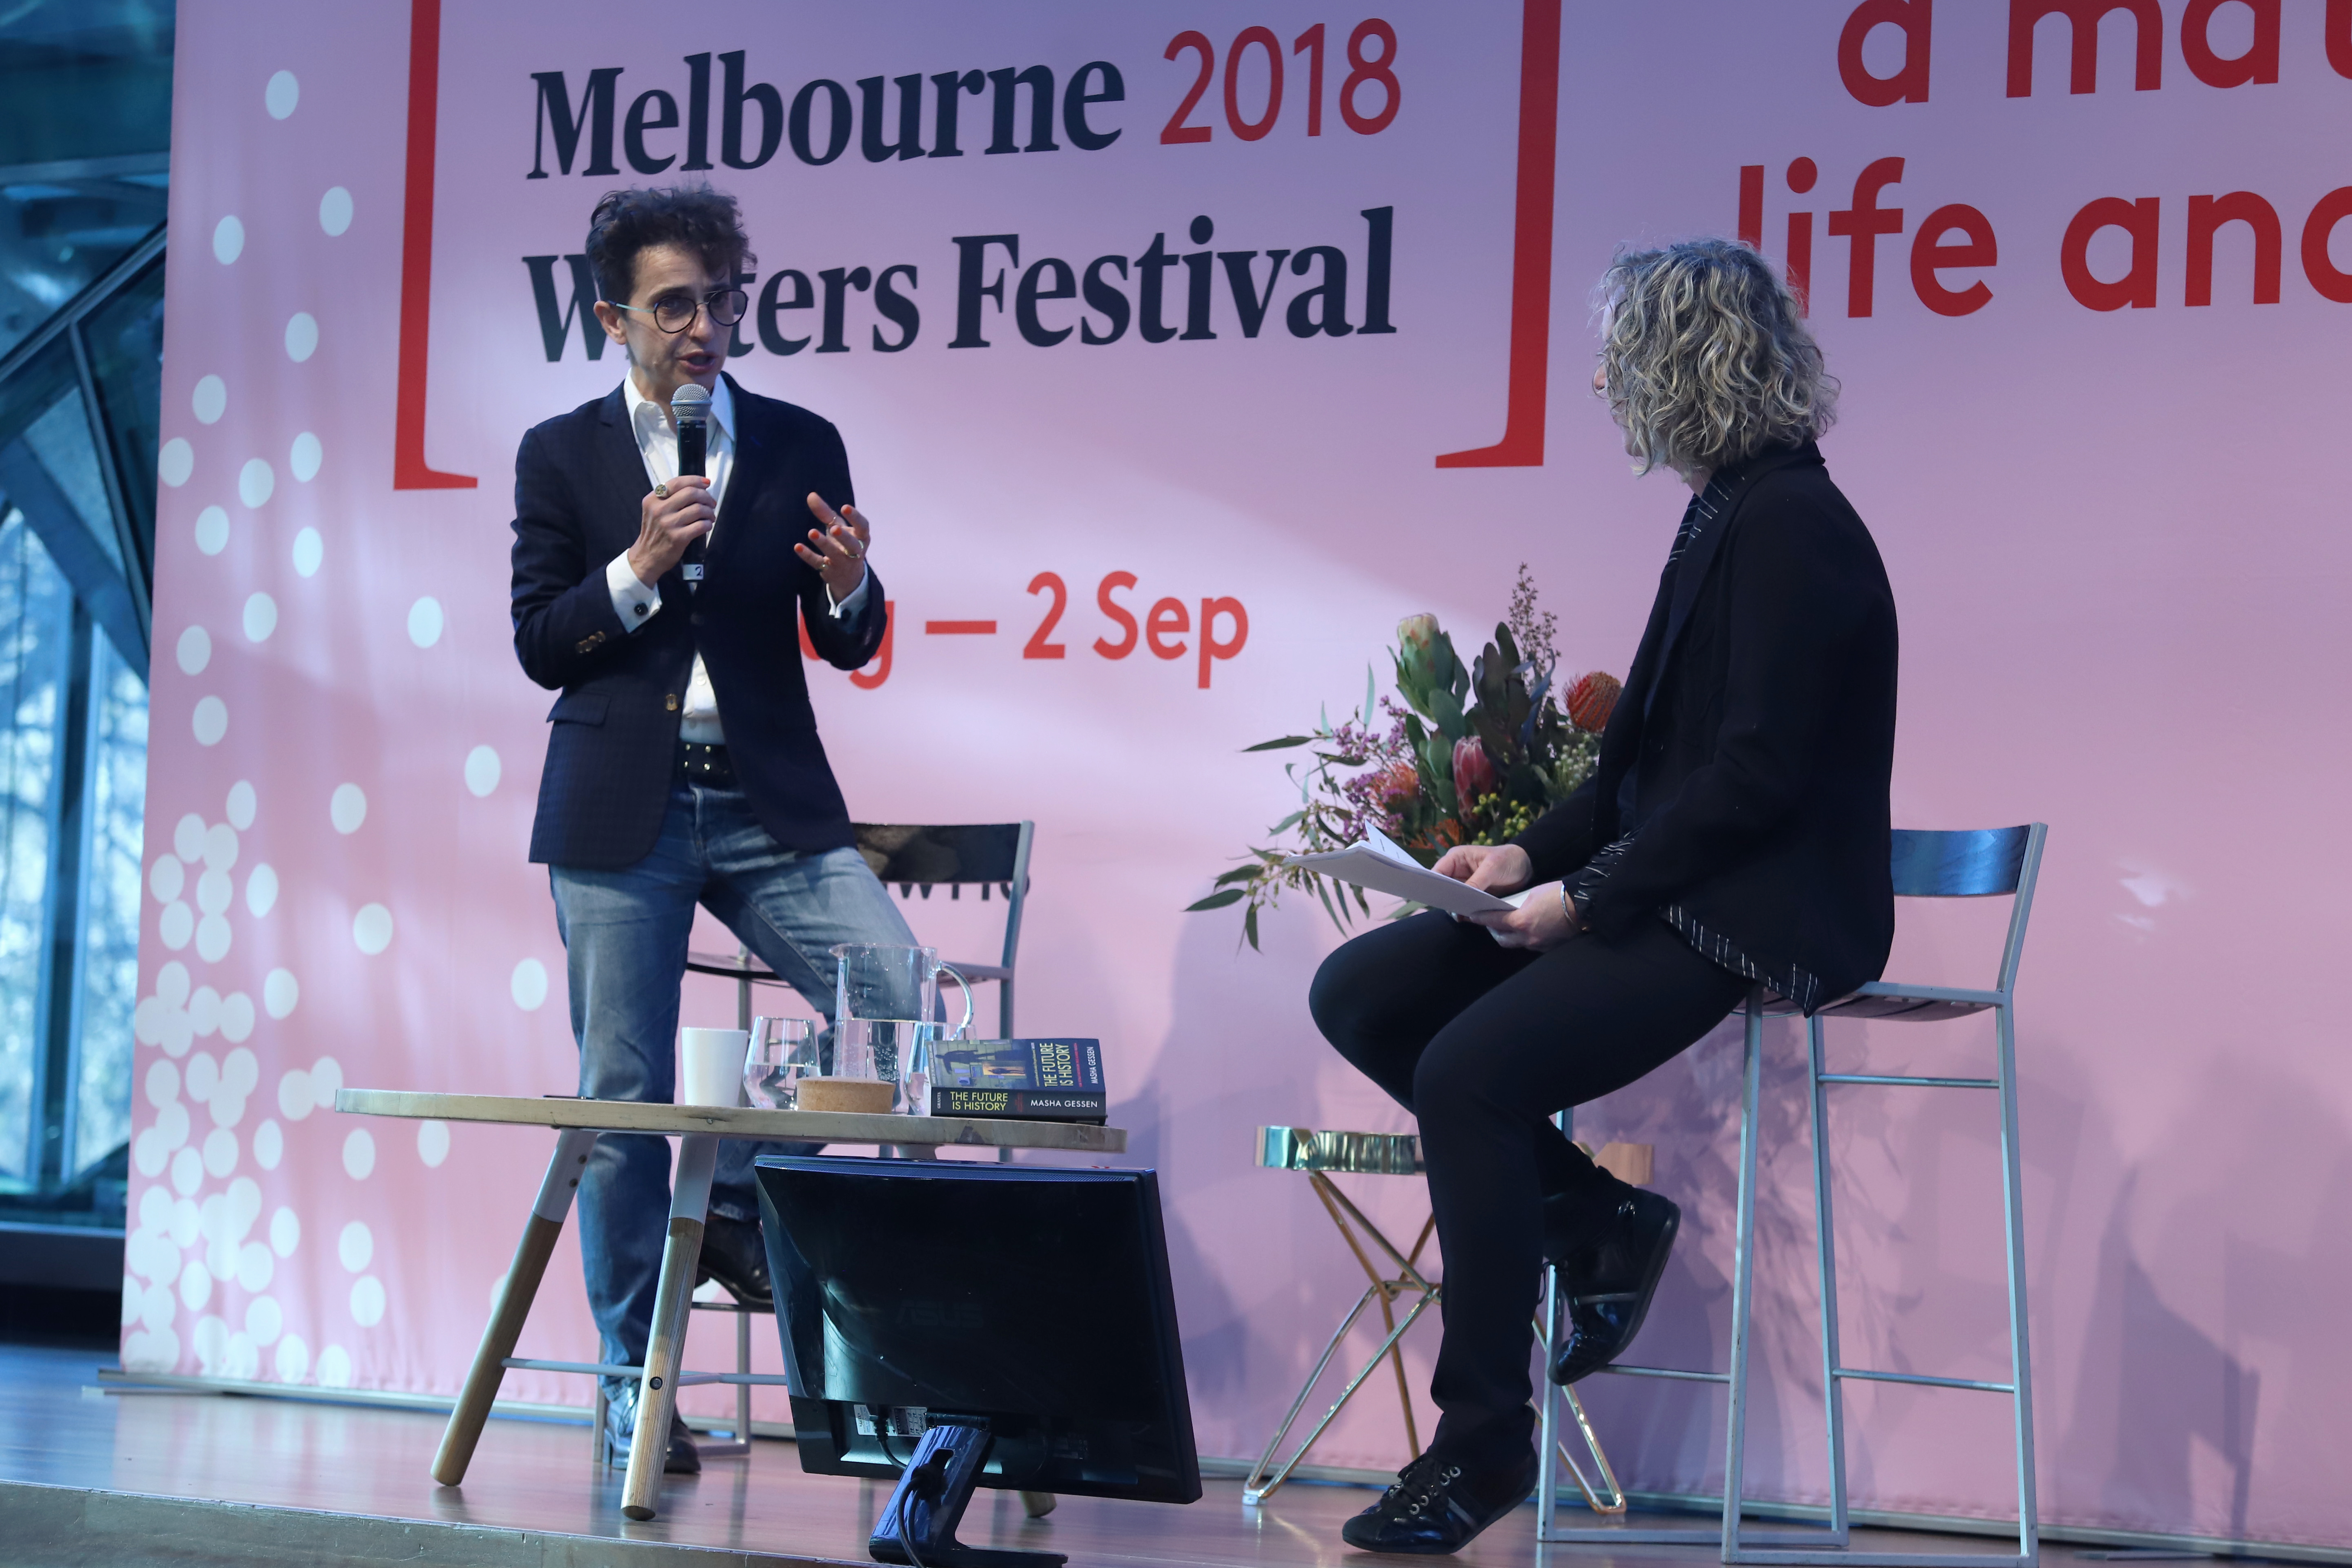 Photo of two people standing in front of a Melbourne Writers Festival banner. On the left, Masha Gessen is wearing glasses with short brown curly hair, holding a microphone and speaking. Sally Warhaft is seated on a stool beside her